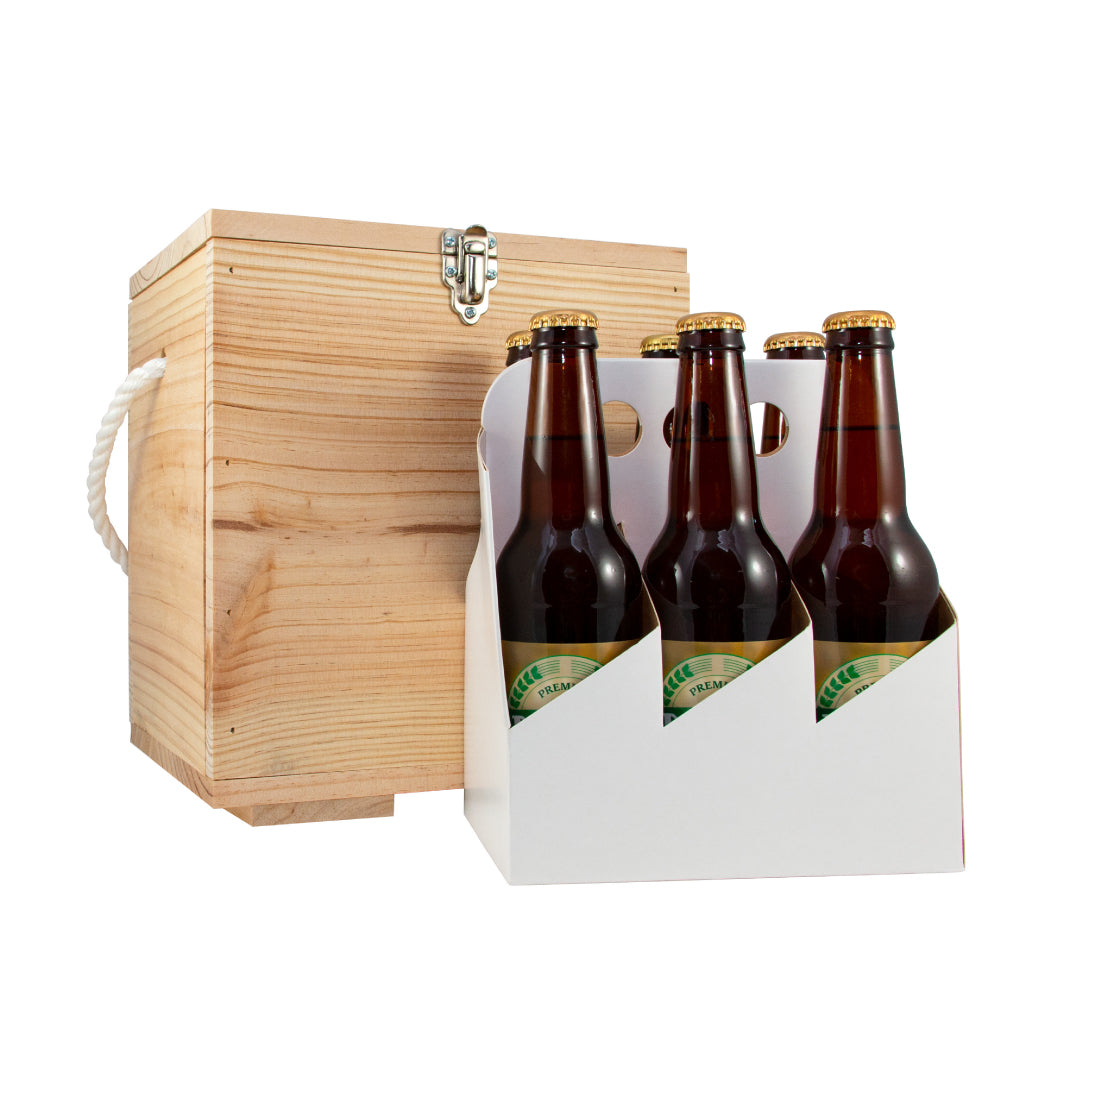 Craft Lager 4.0% - Wooden Beer Box - 6 pack